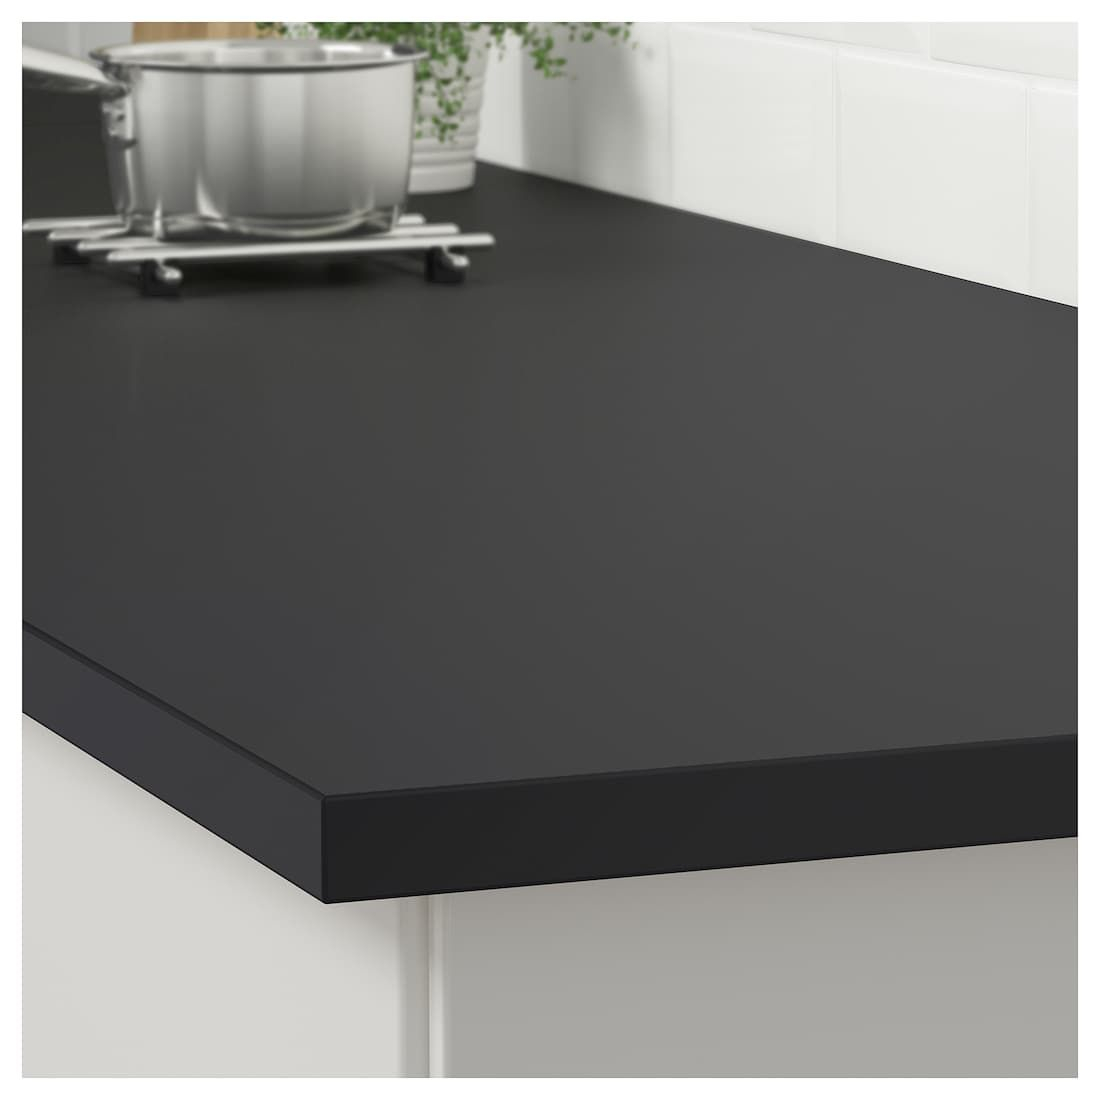 Ekbacken Countertop Matte Anthracite Laminate 74x1 1 8